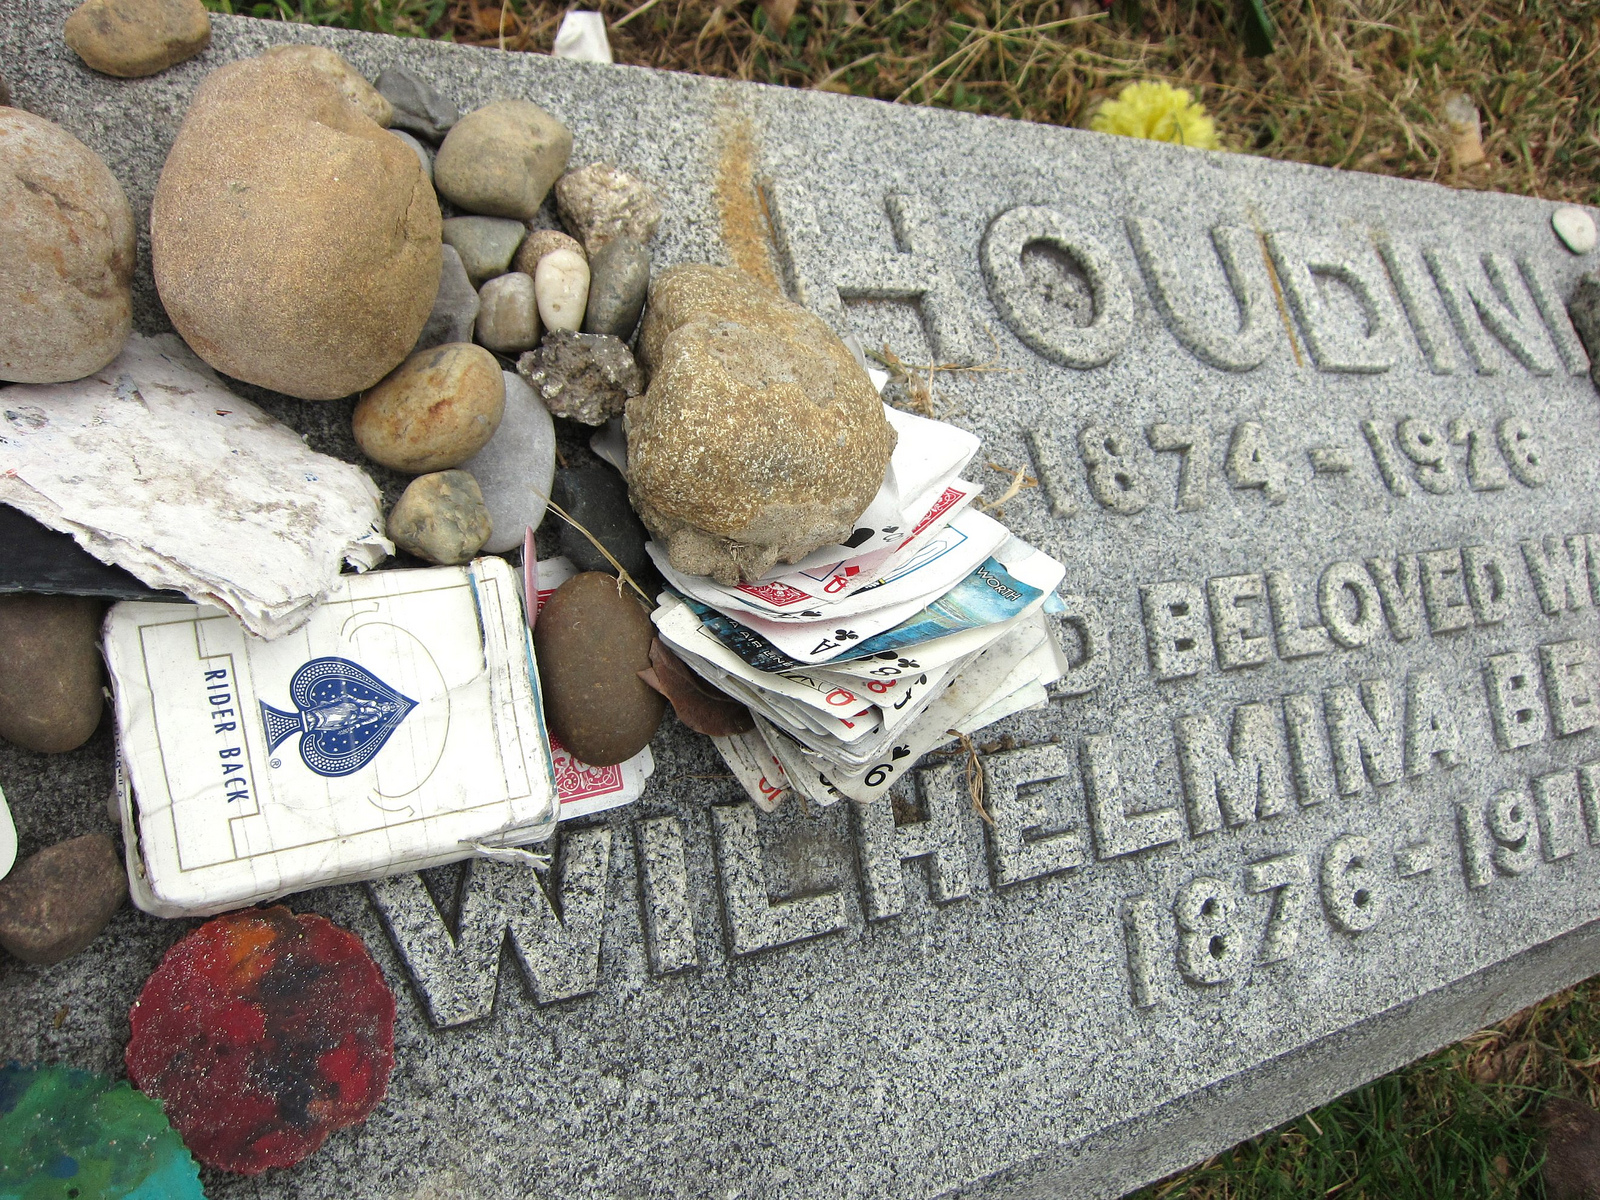 Houdini's grave in Machpelah Cemetery, Queens (all photographs by the author for Hyperallergic)